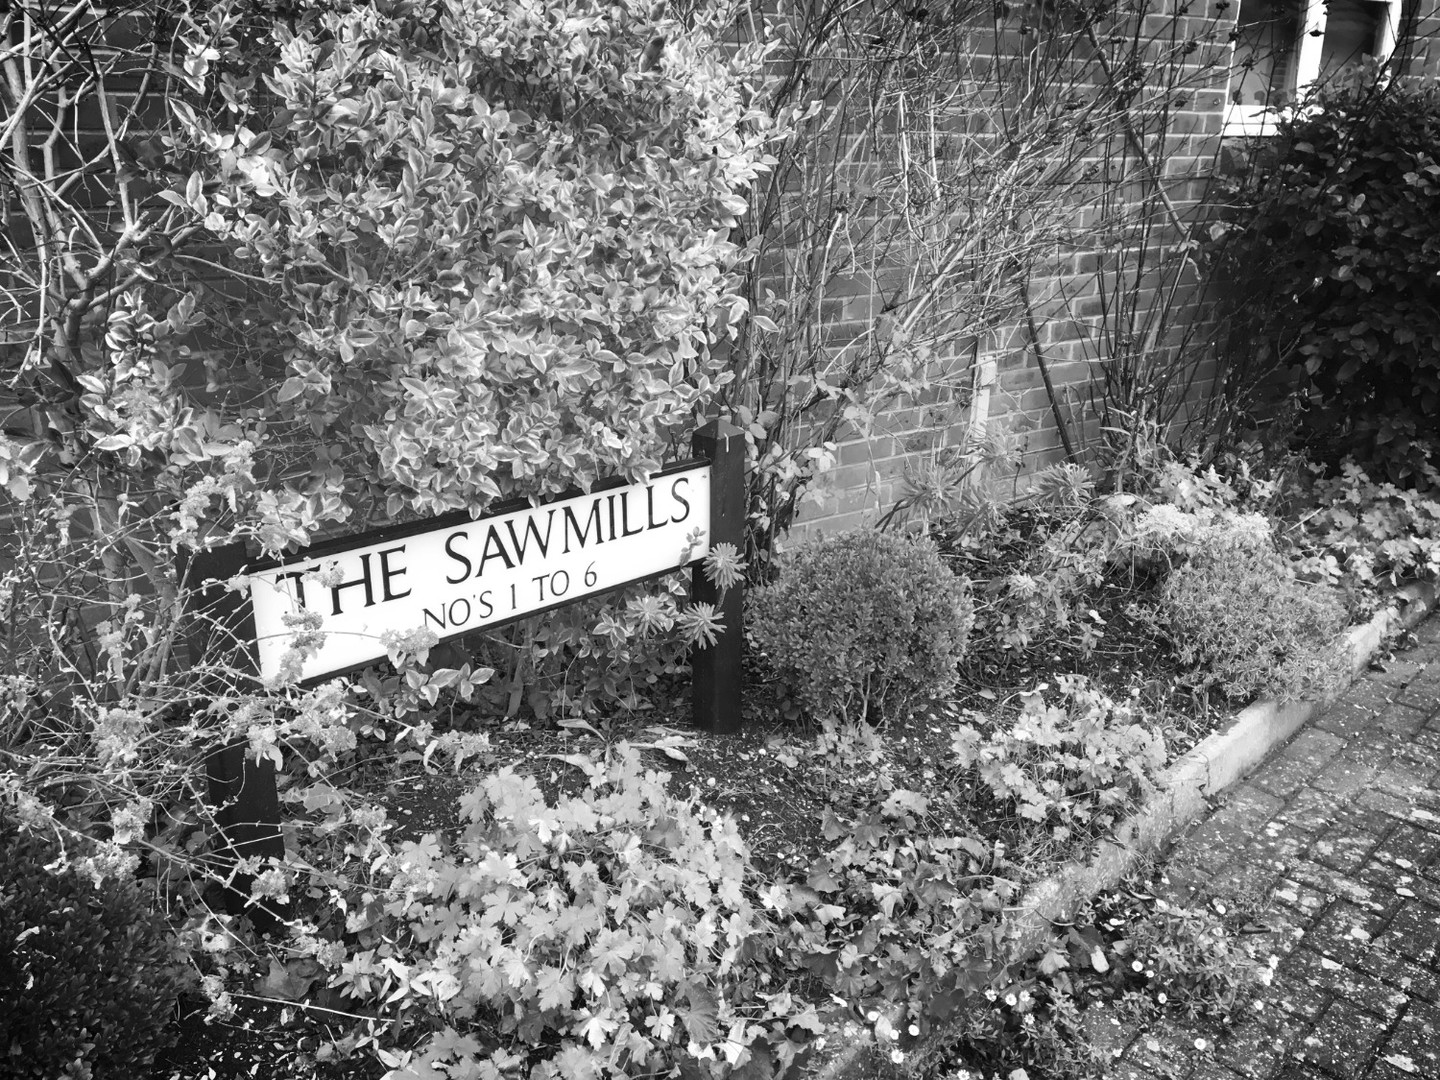 The Sawmills